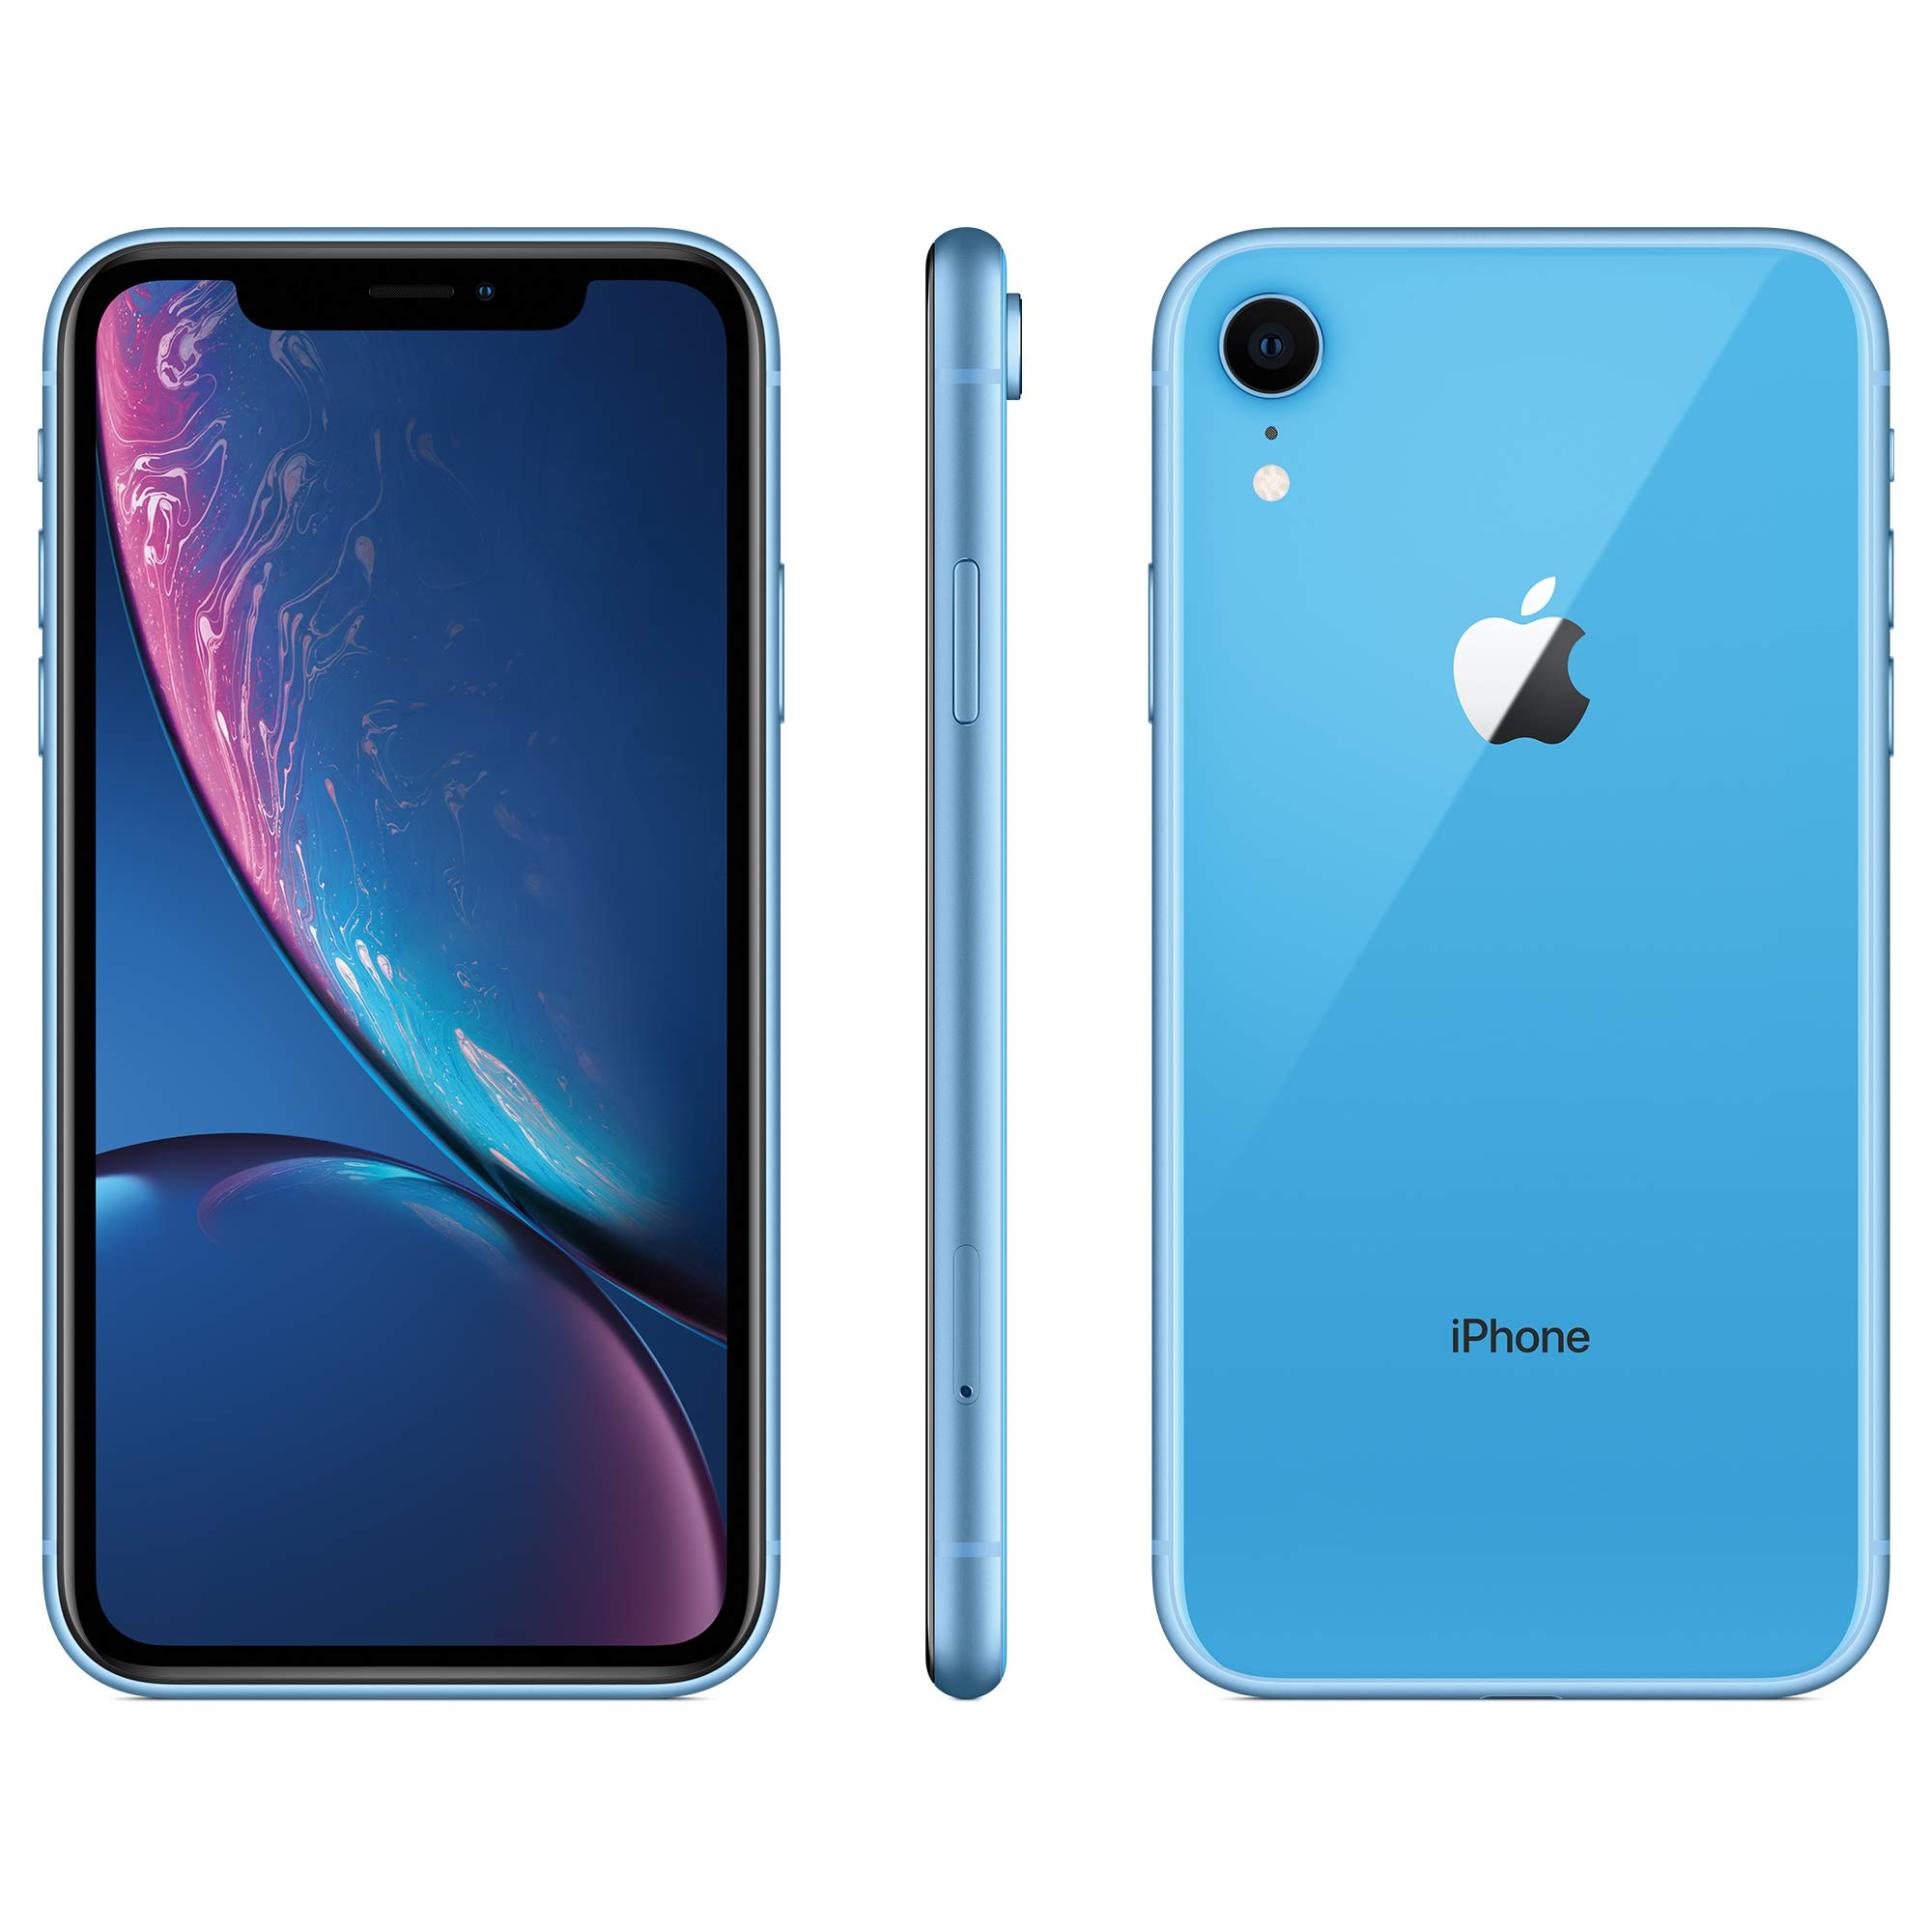 Apple iPhone XR, AT&T, 128GB - Blue (Renewed)